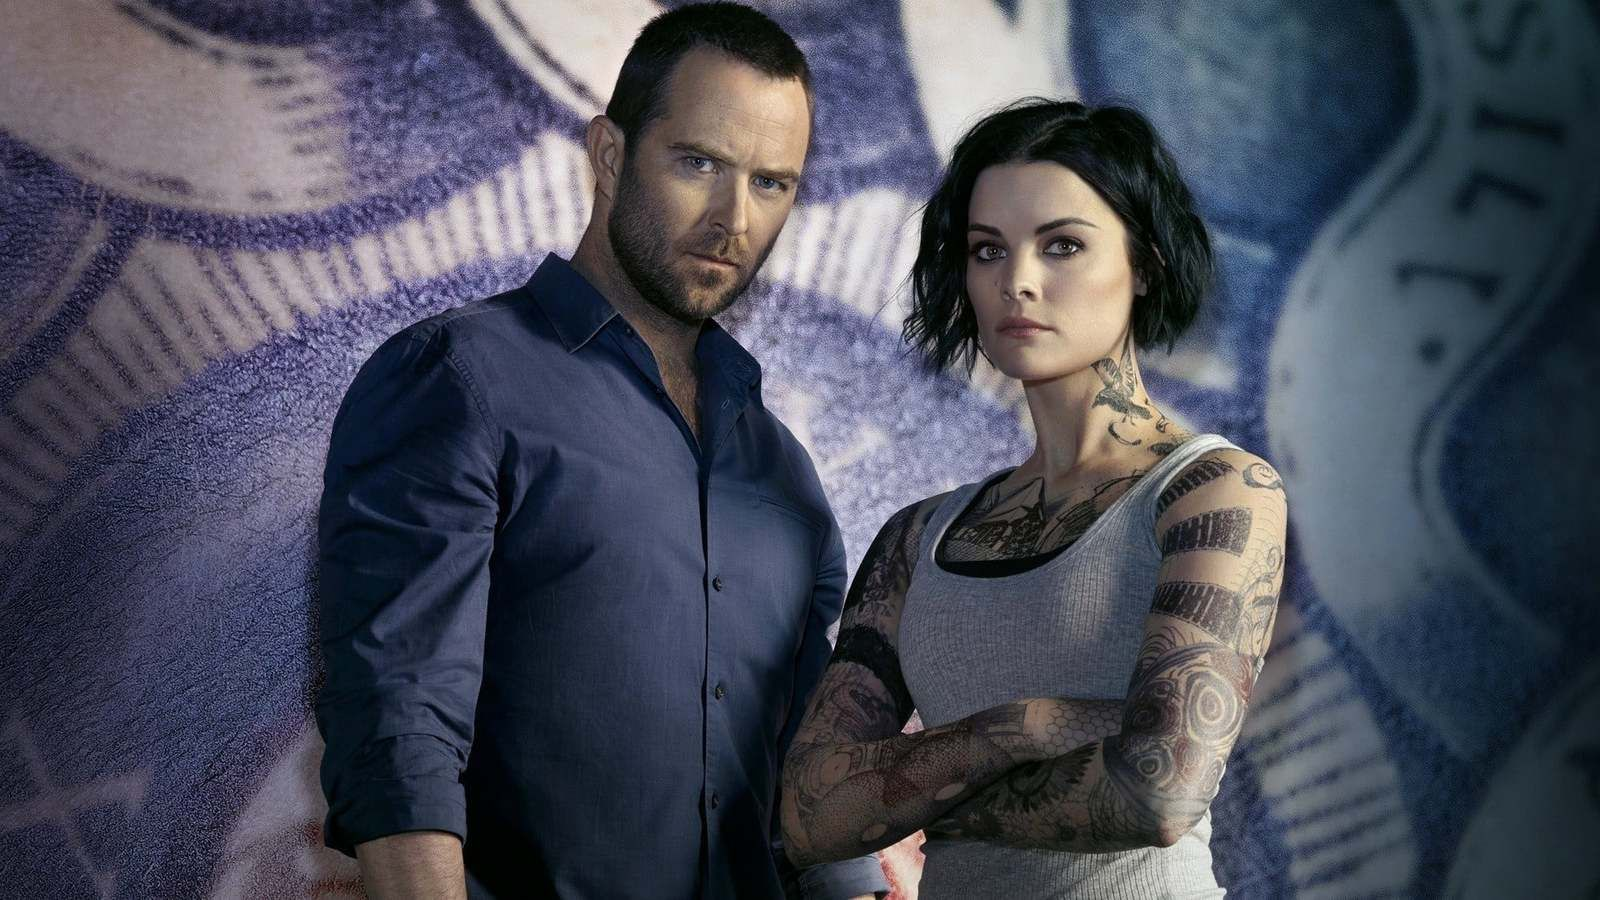 watch blindspot season 3 episode 10 online free